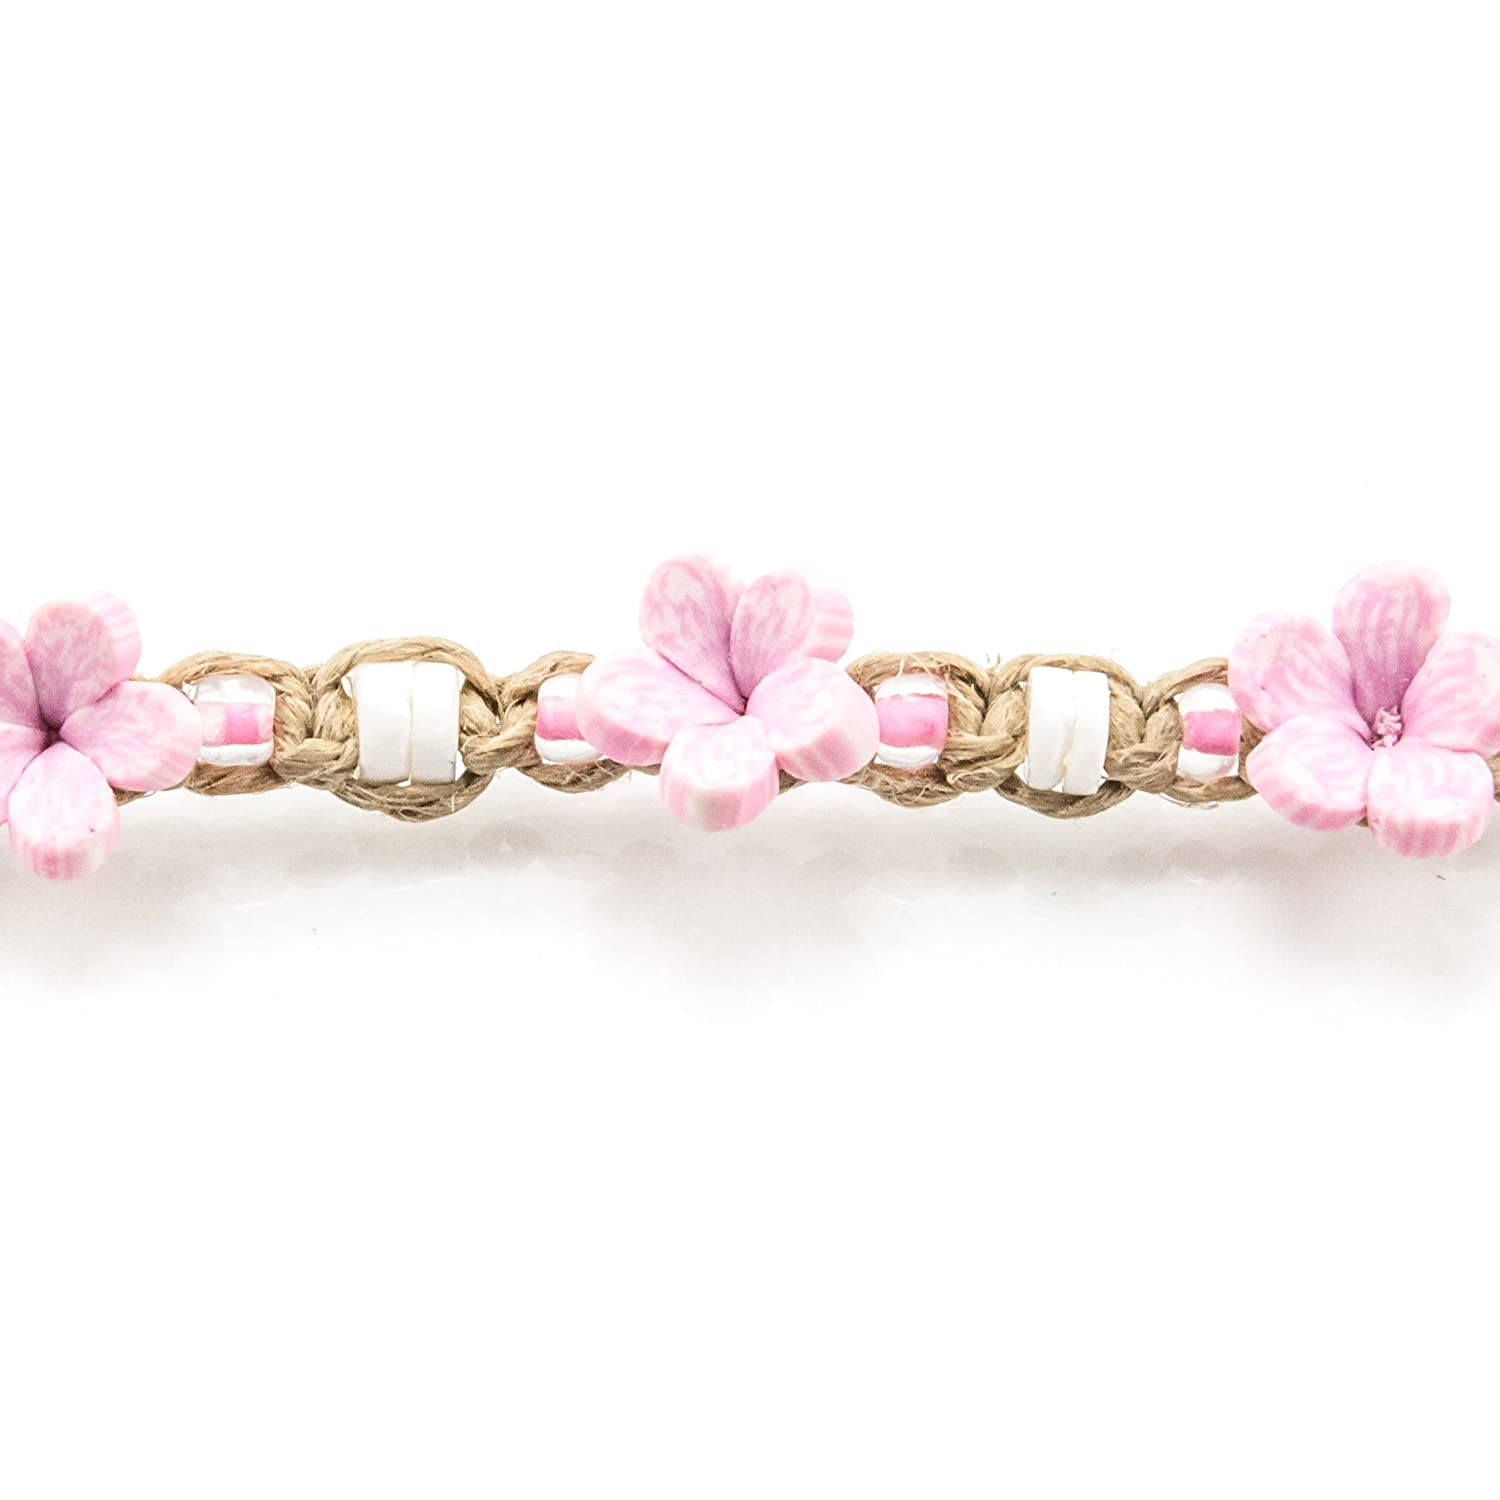 Hemp Anklet Bracelet with Puka Clam Shell Beads Light Pink Glass Beads and Light Pink 3D Fimo Flower Beads